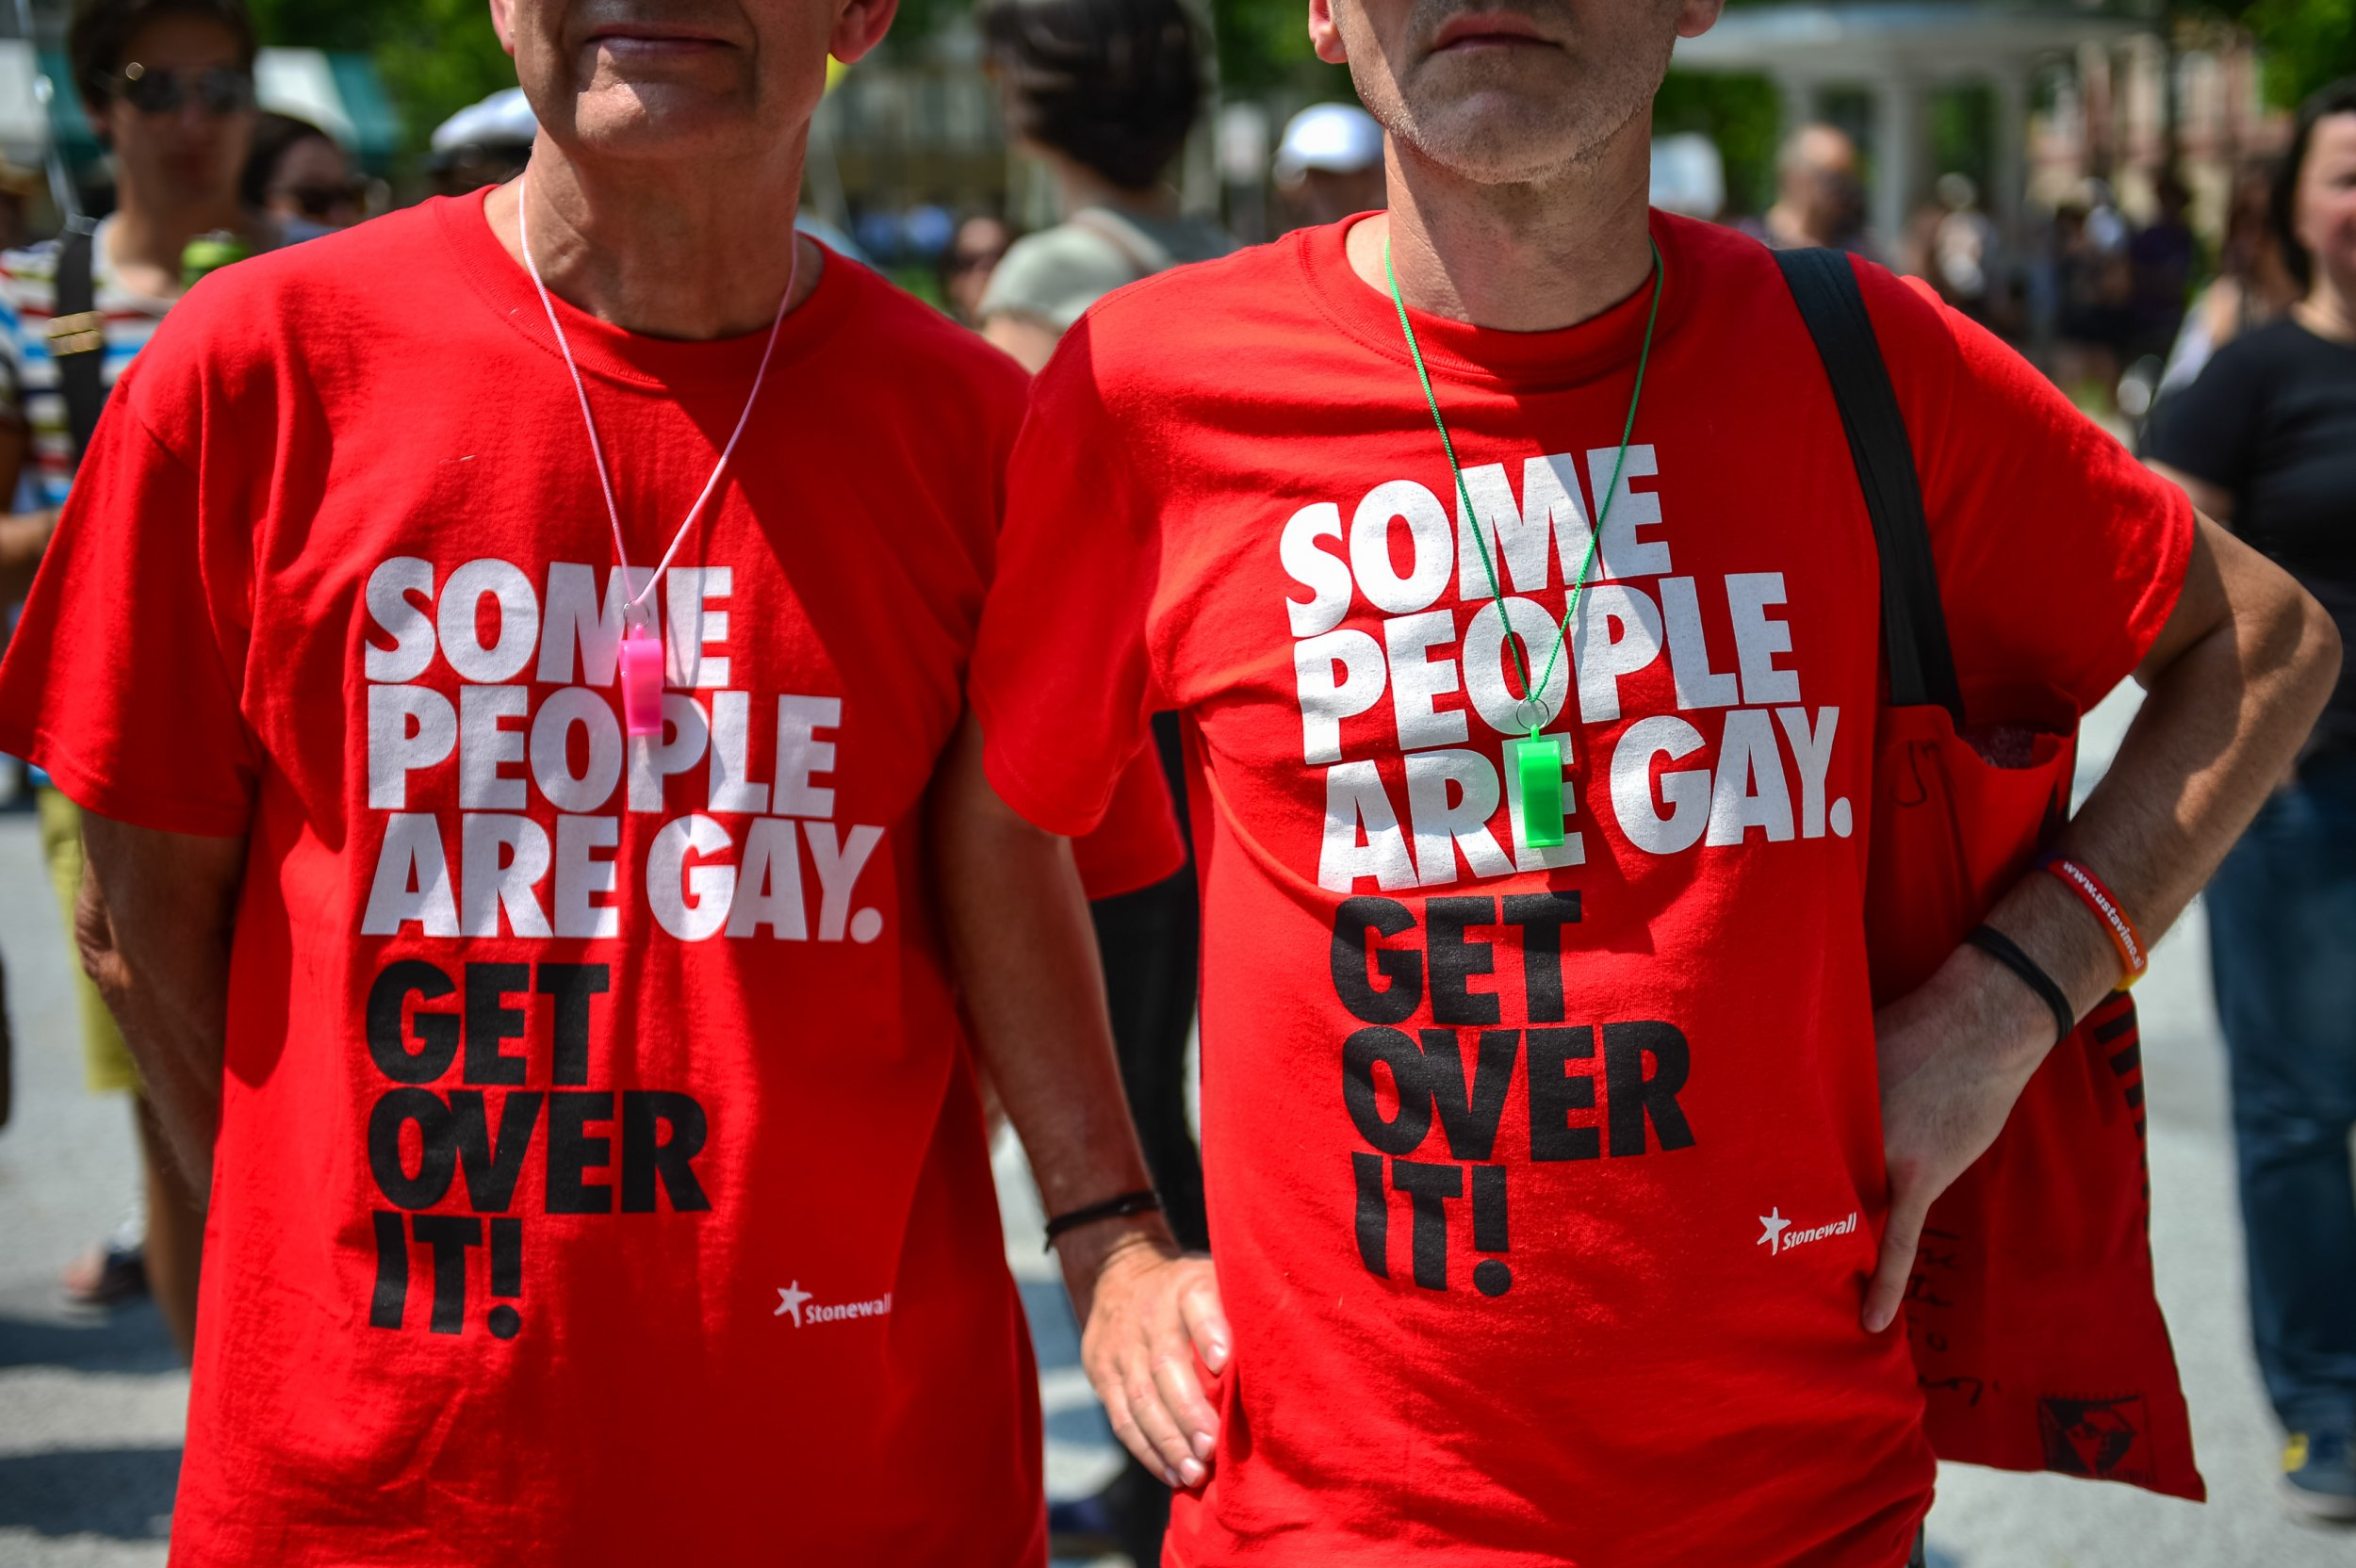 618d0103c1d2 An argument about what to wear in a family photo set off a new direction in  gay rights protests Jure Makovec/AFP/Getty